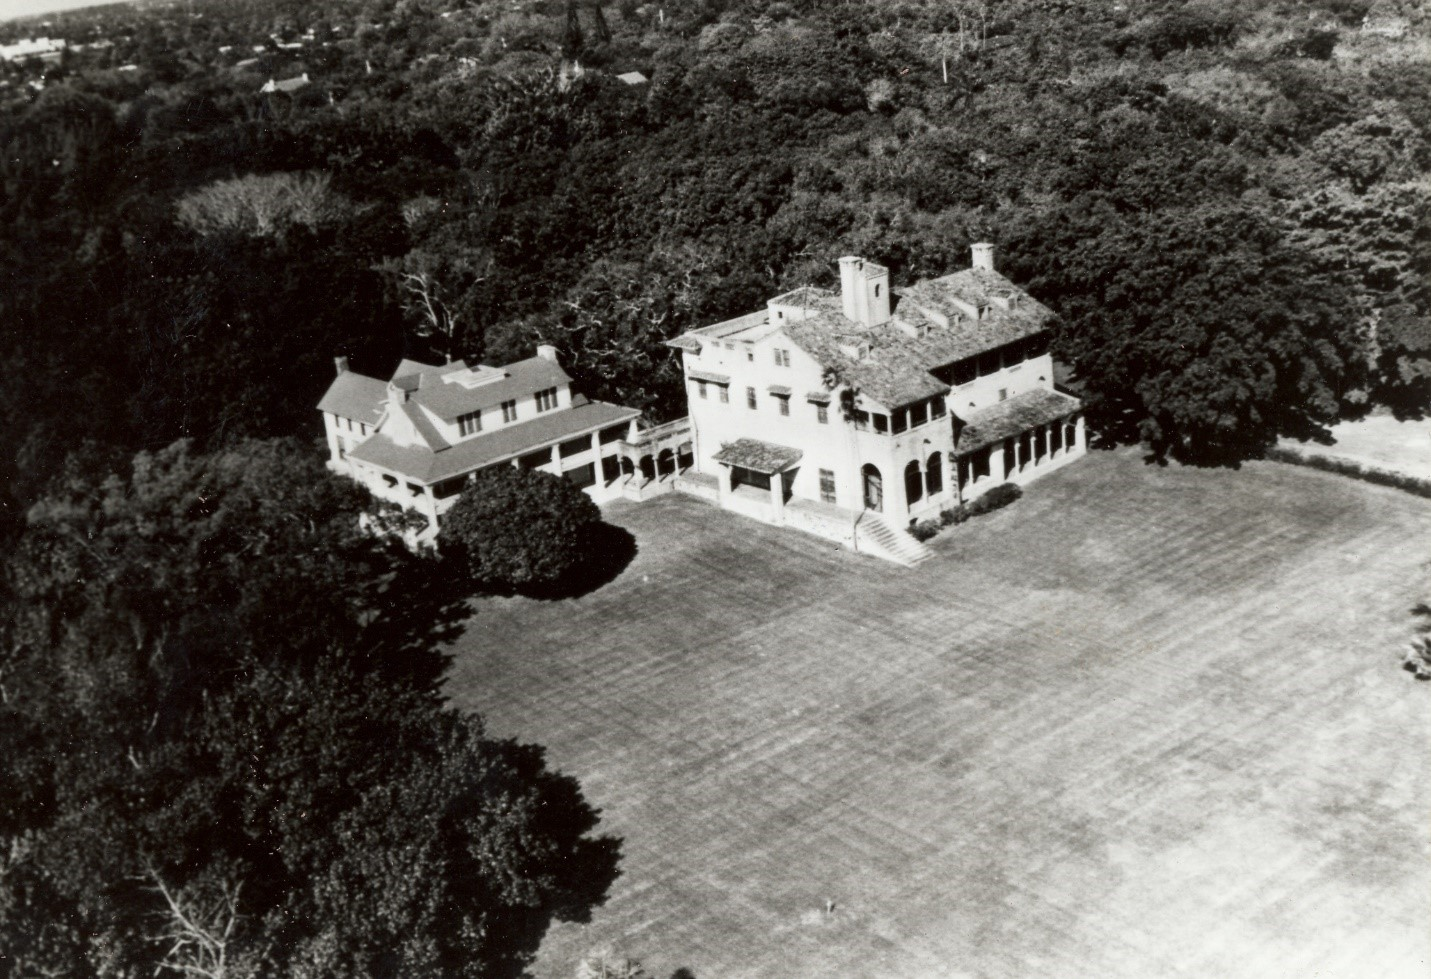 View of the Deering Estate showing the two historic homes ca. 1980s